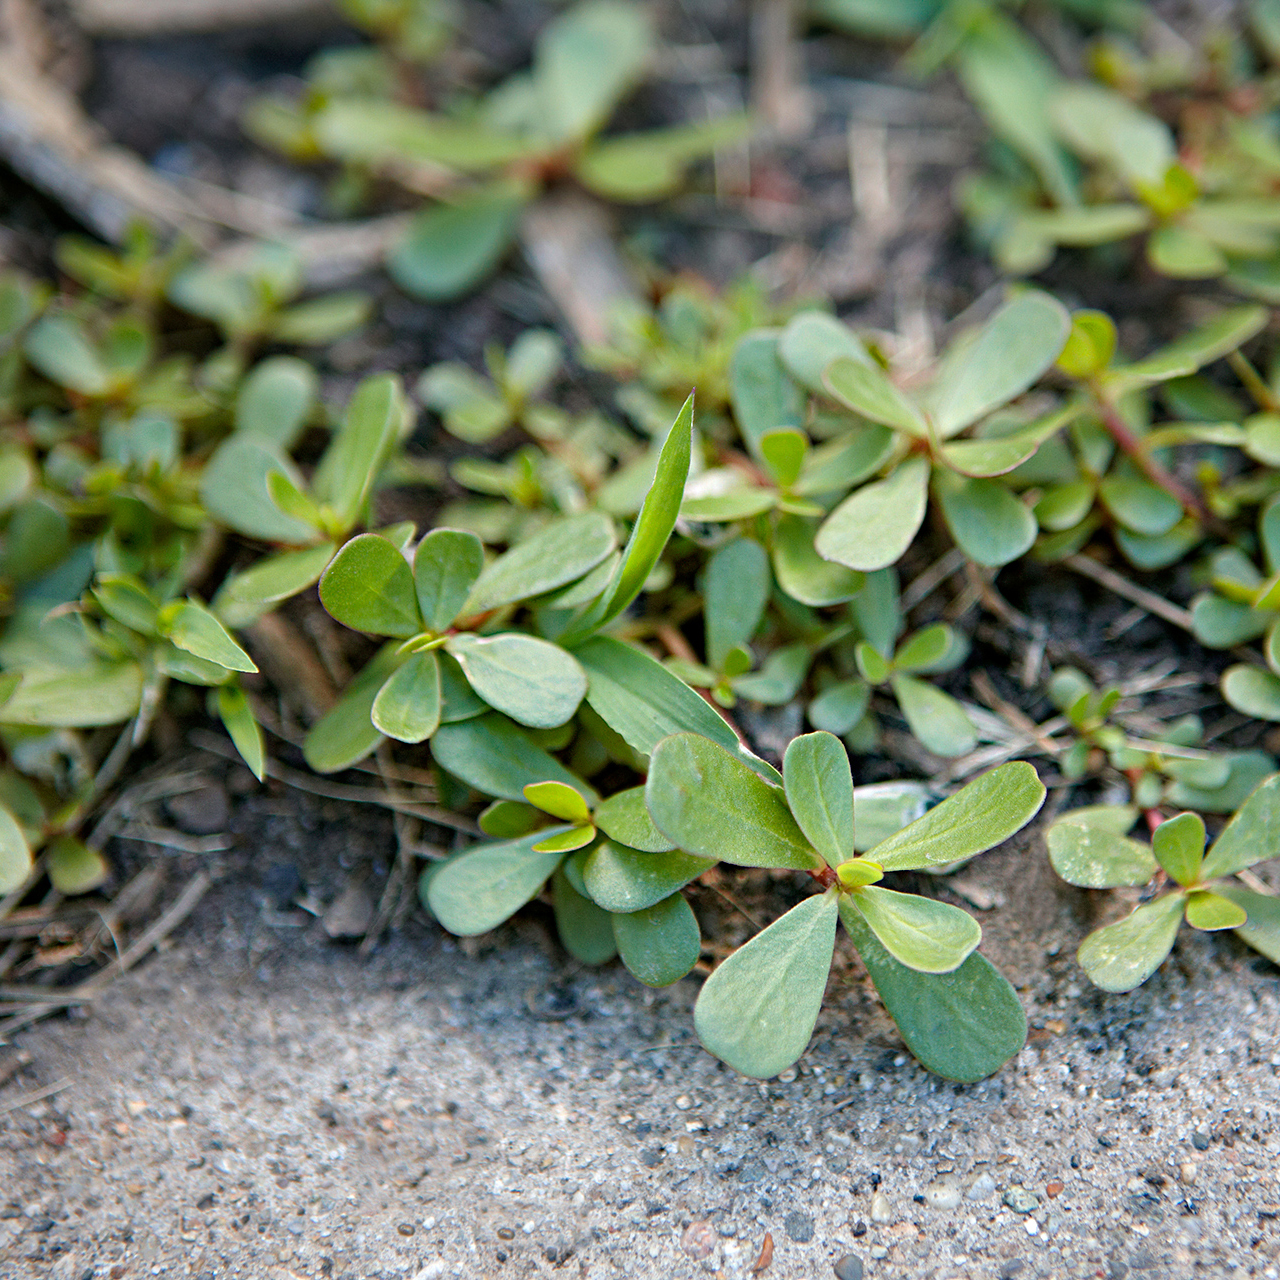 detail of purslane groundcover weed